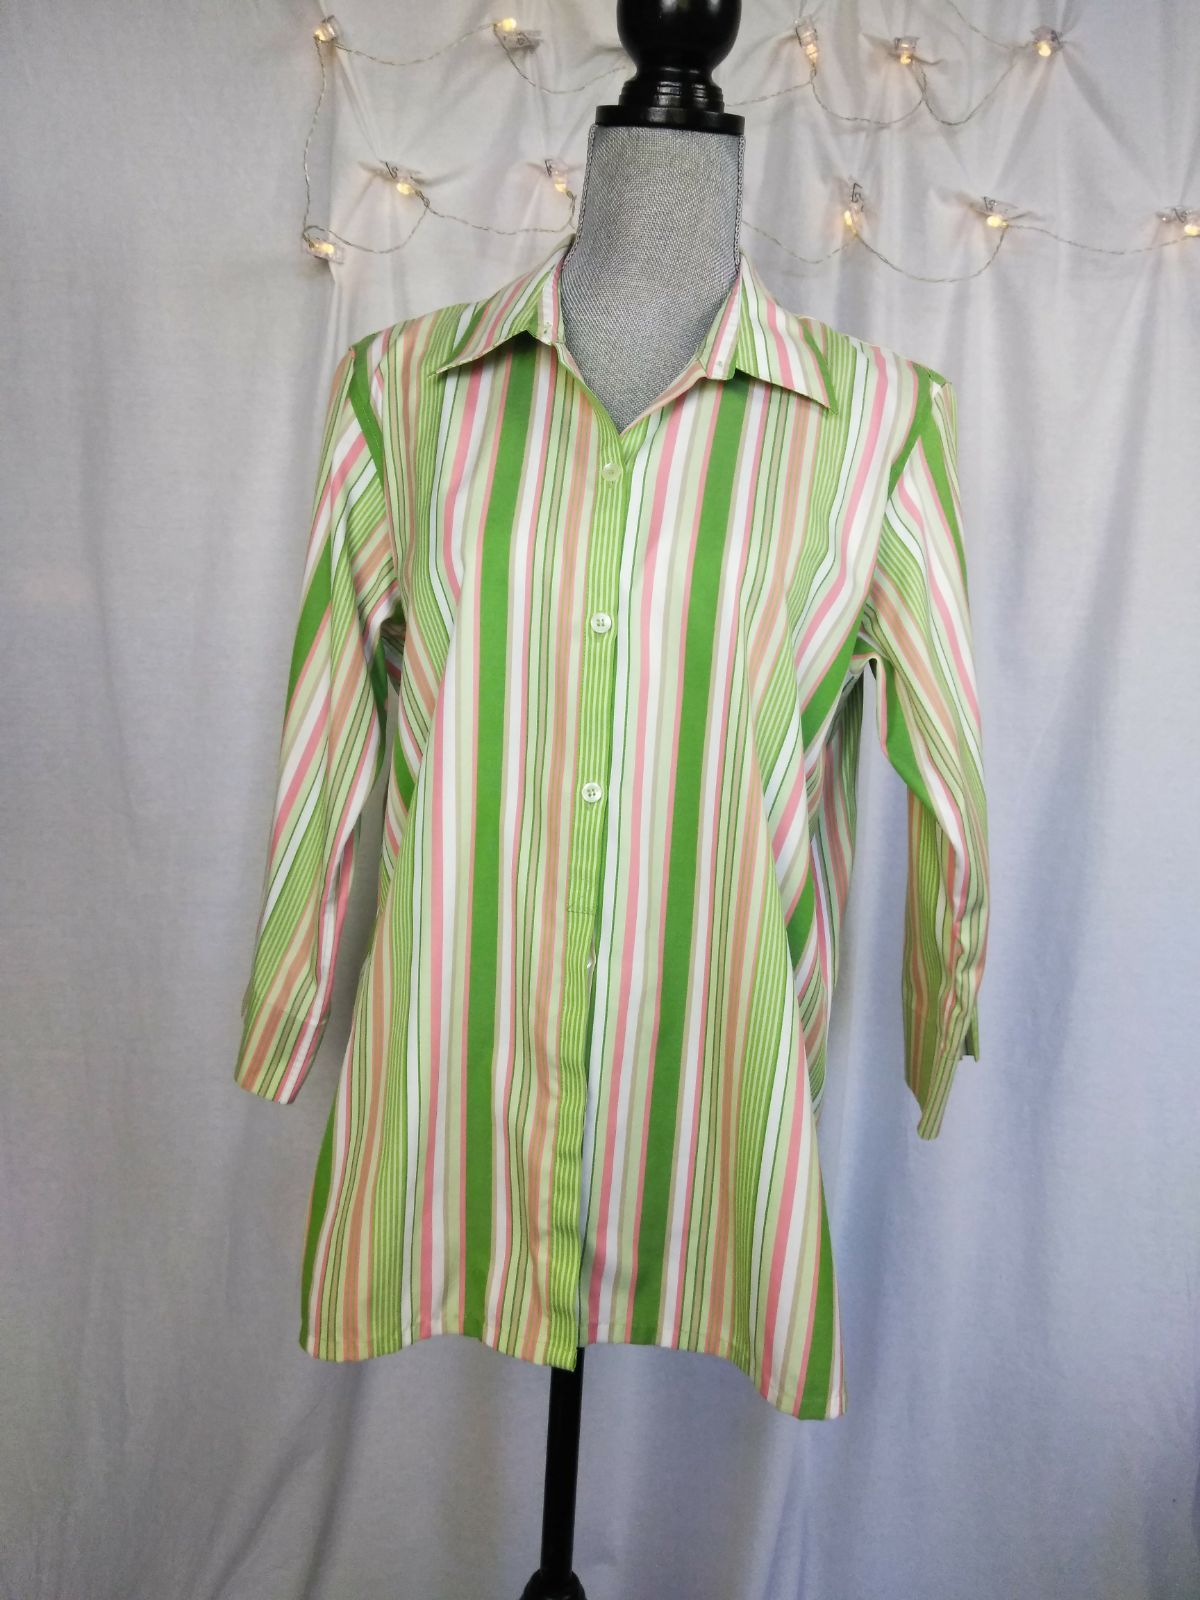 8321ab09dbee Liz Claiborne Button Up Shirt Pastel. Stripes multi color Pink white green  vertical stripes collar 3 4 sleeves. Spring Pastel Easter Brunch Shopping  ...